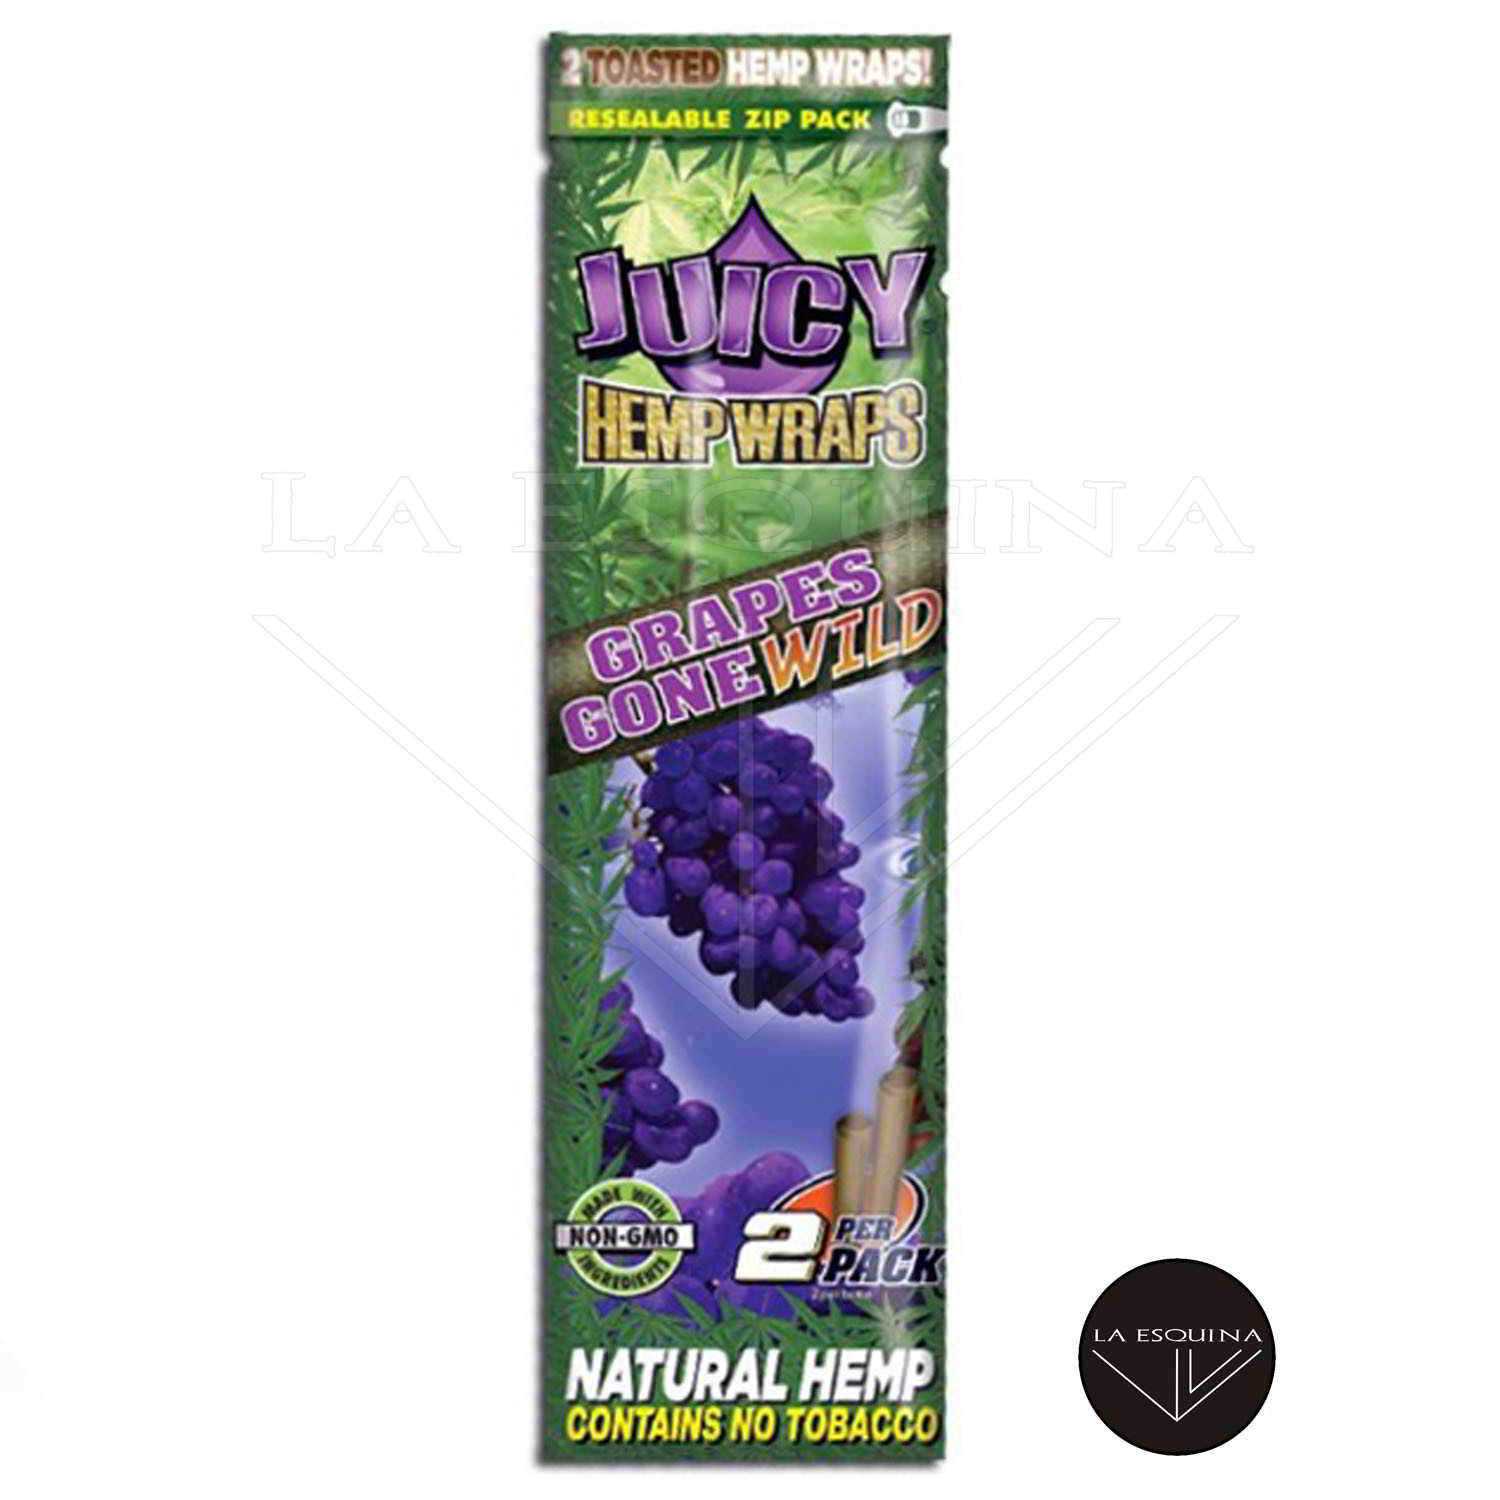 Papel JUICY HEMP WRAPS Blue